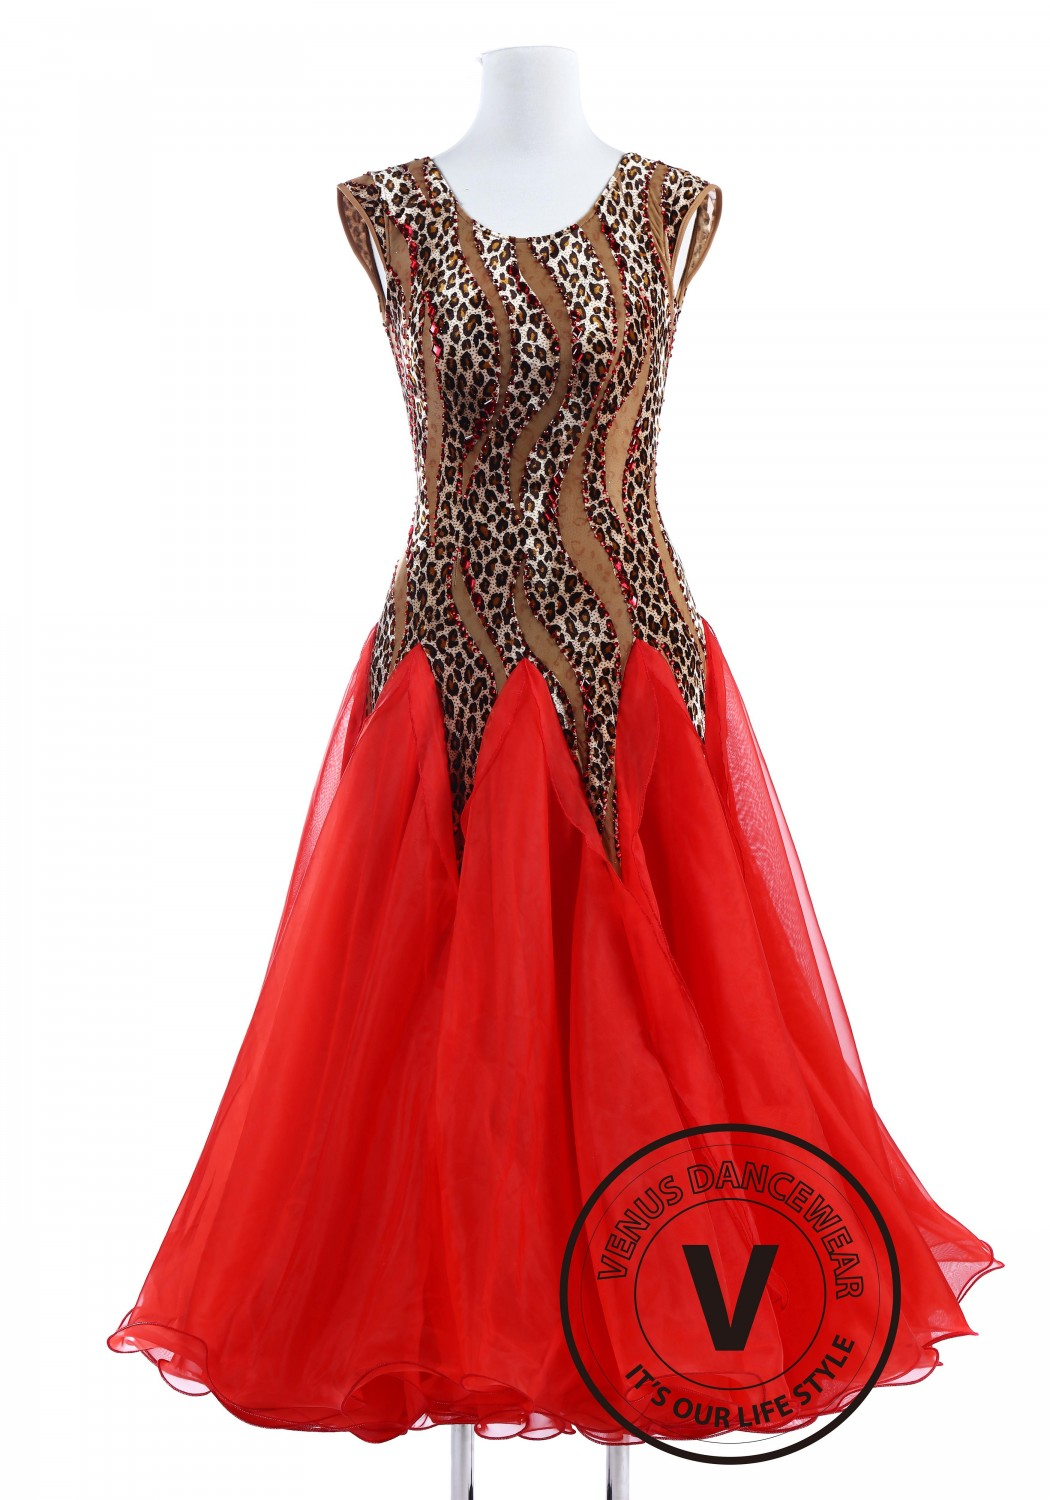 Leopard Lady Red Smooth Foxtrot Quickstep Women Competition Dress